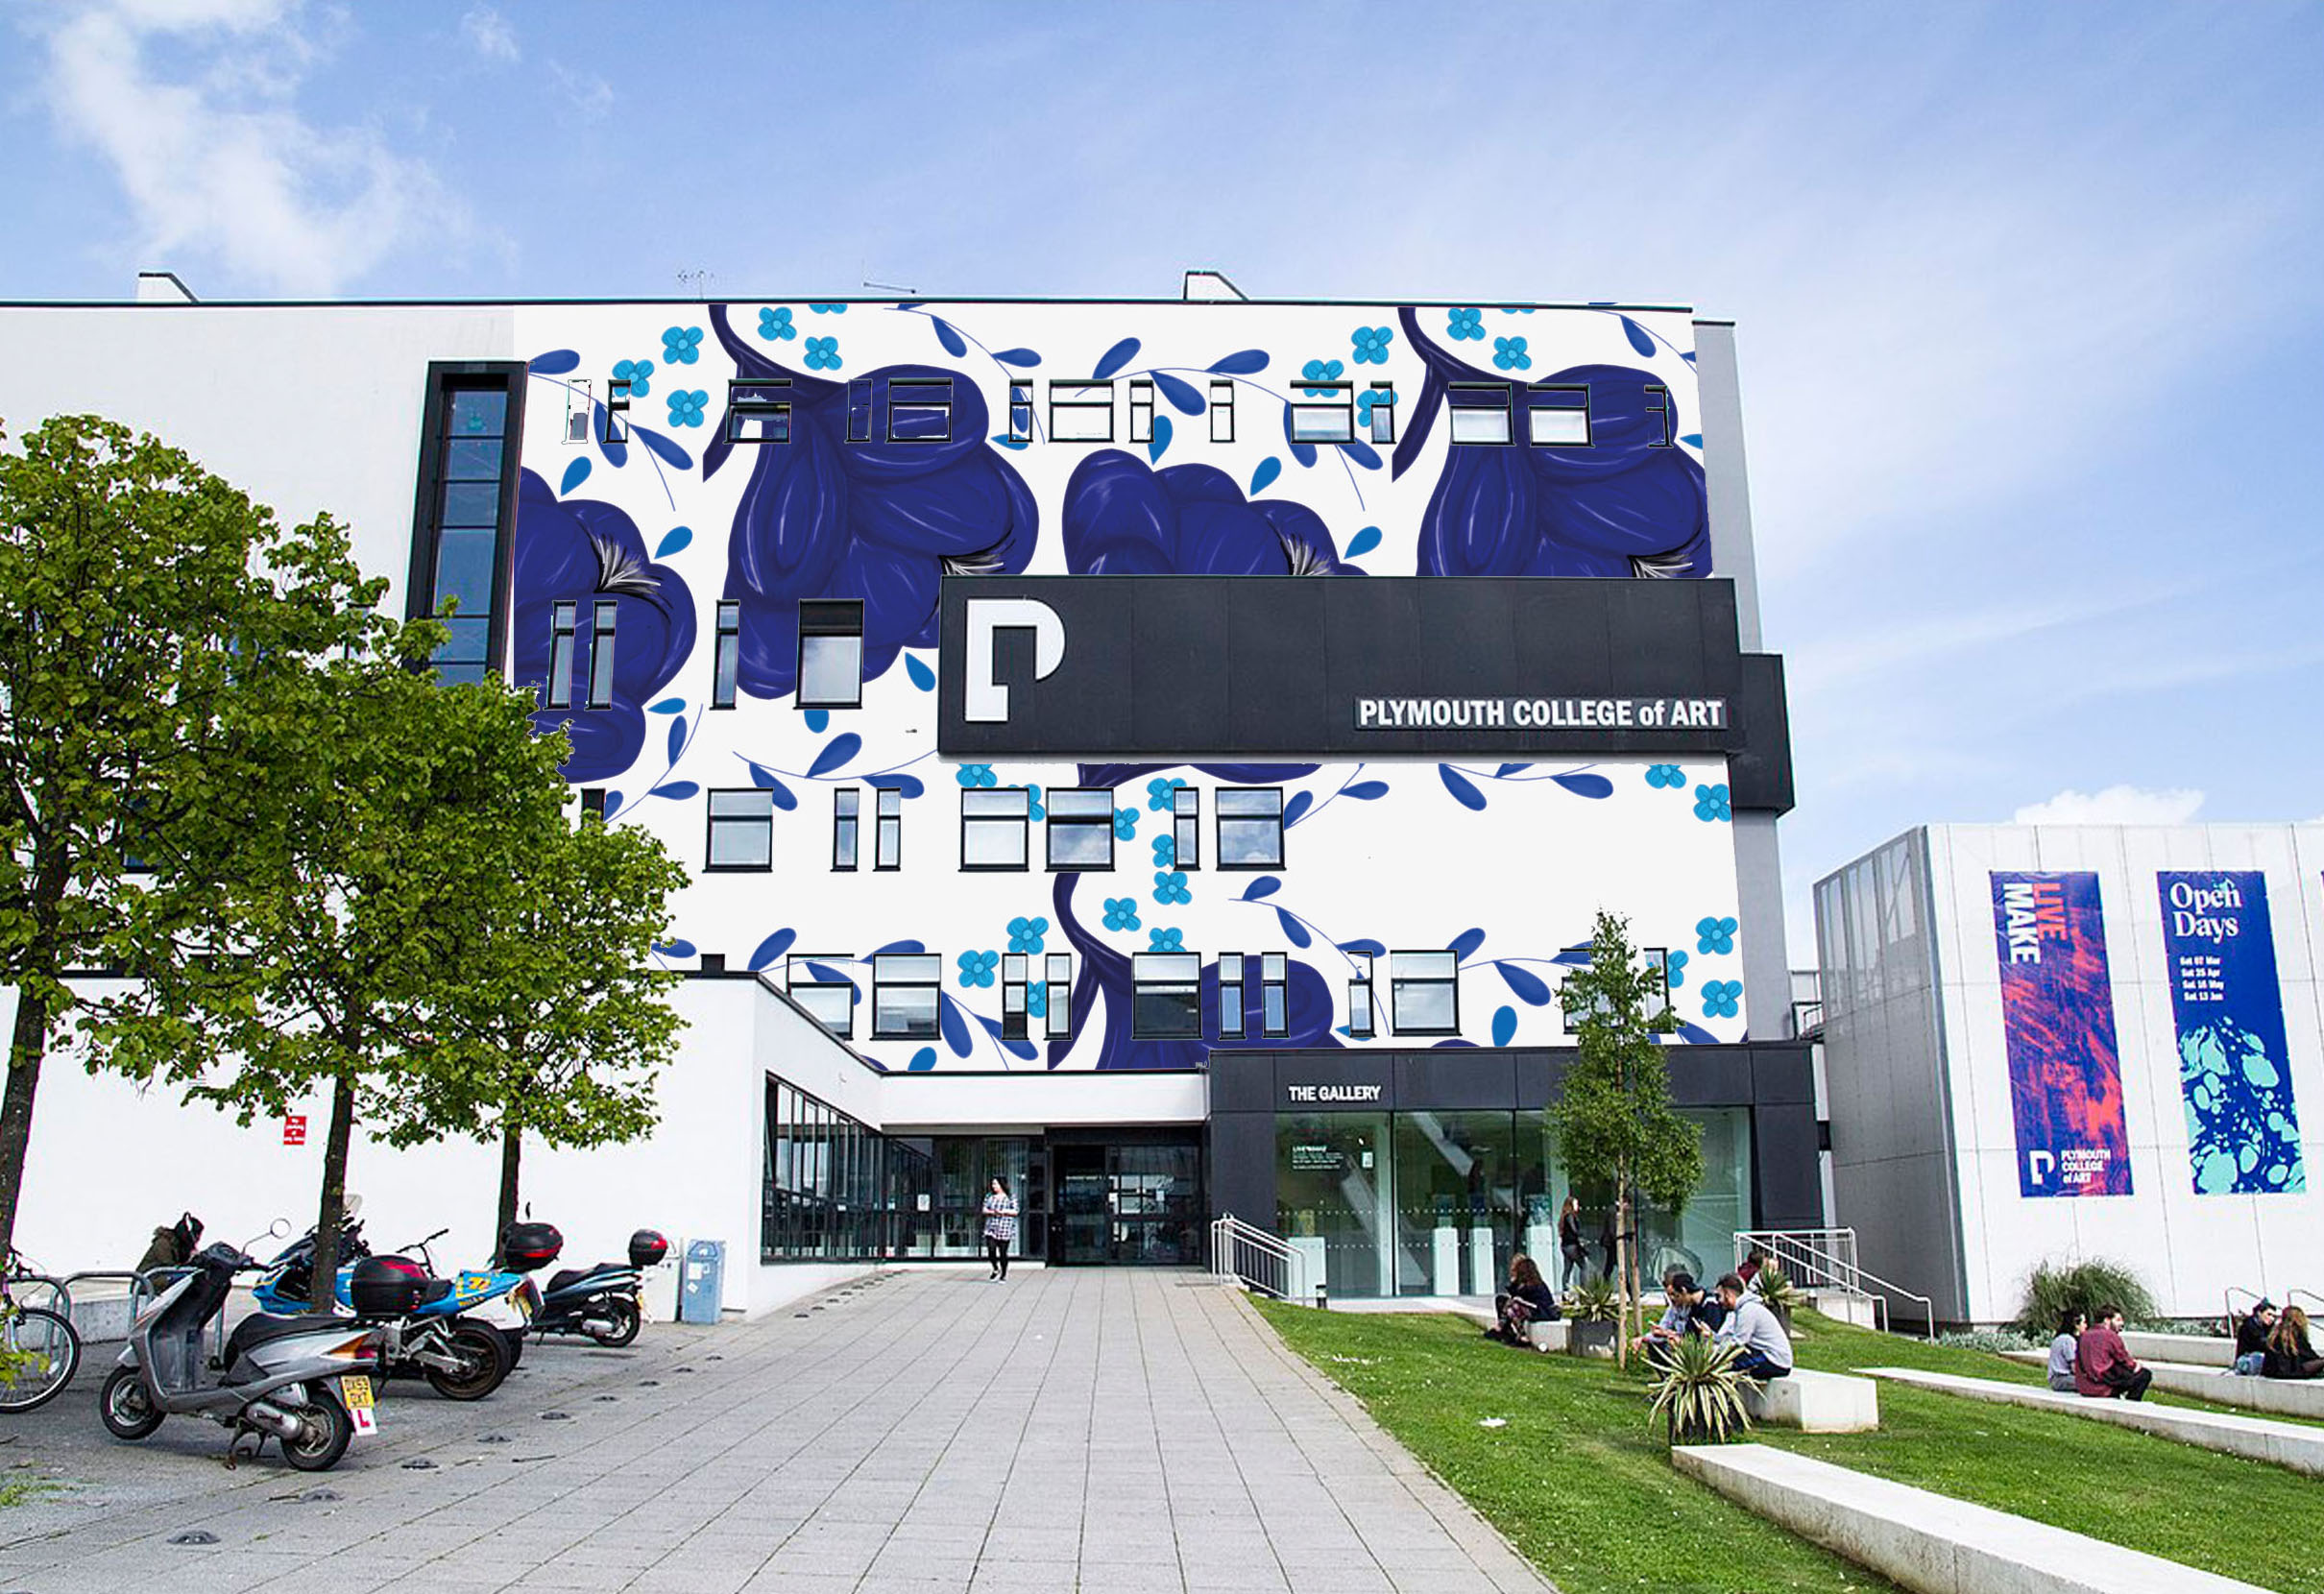 301: Plymouth College of Art Visual with Pattern